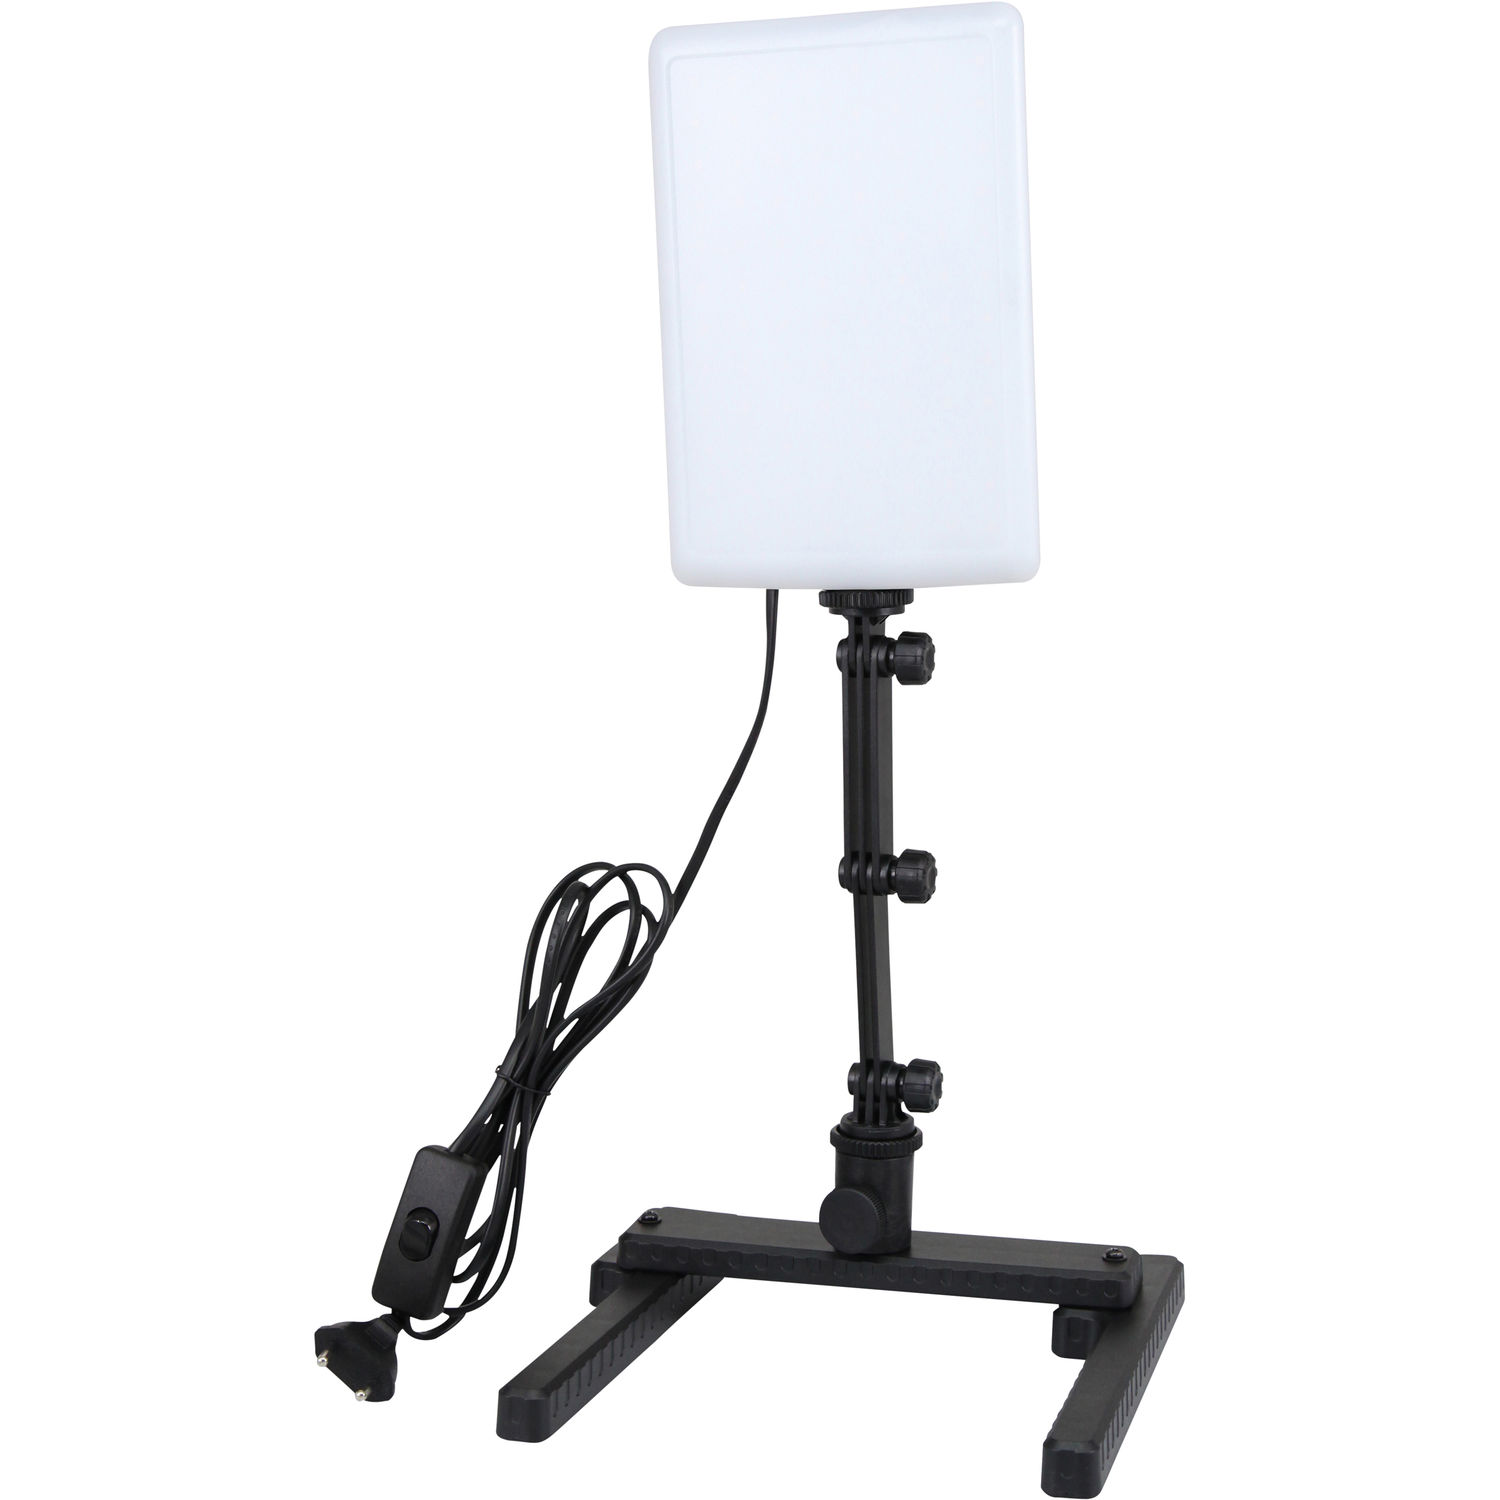 NanLite Compac 20 5600K Slim Soft Light Studio LED Panel